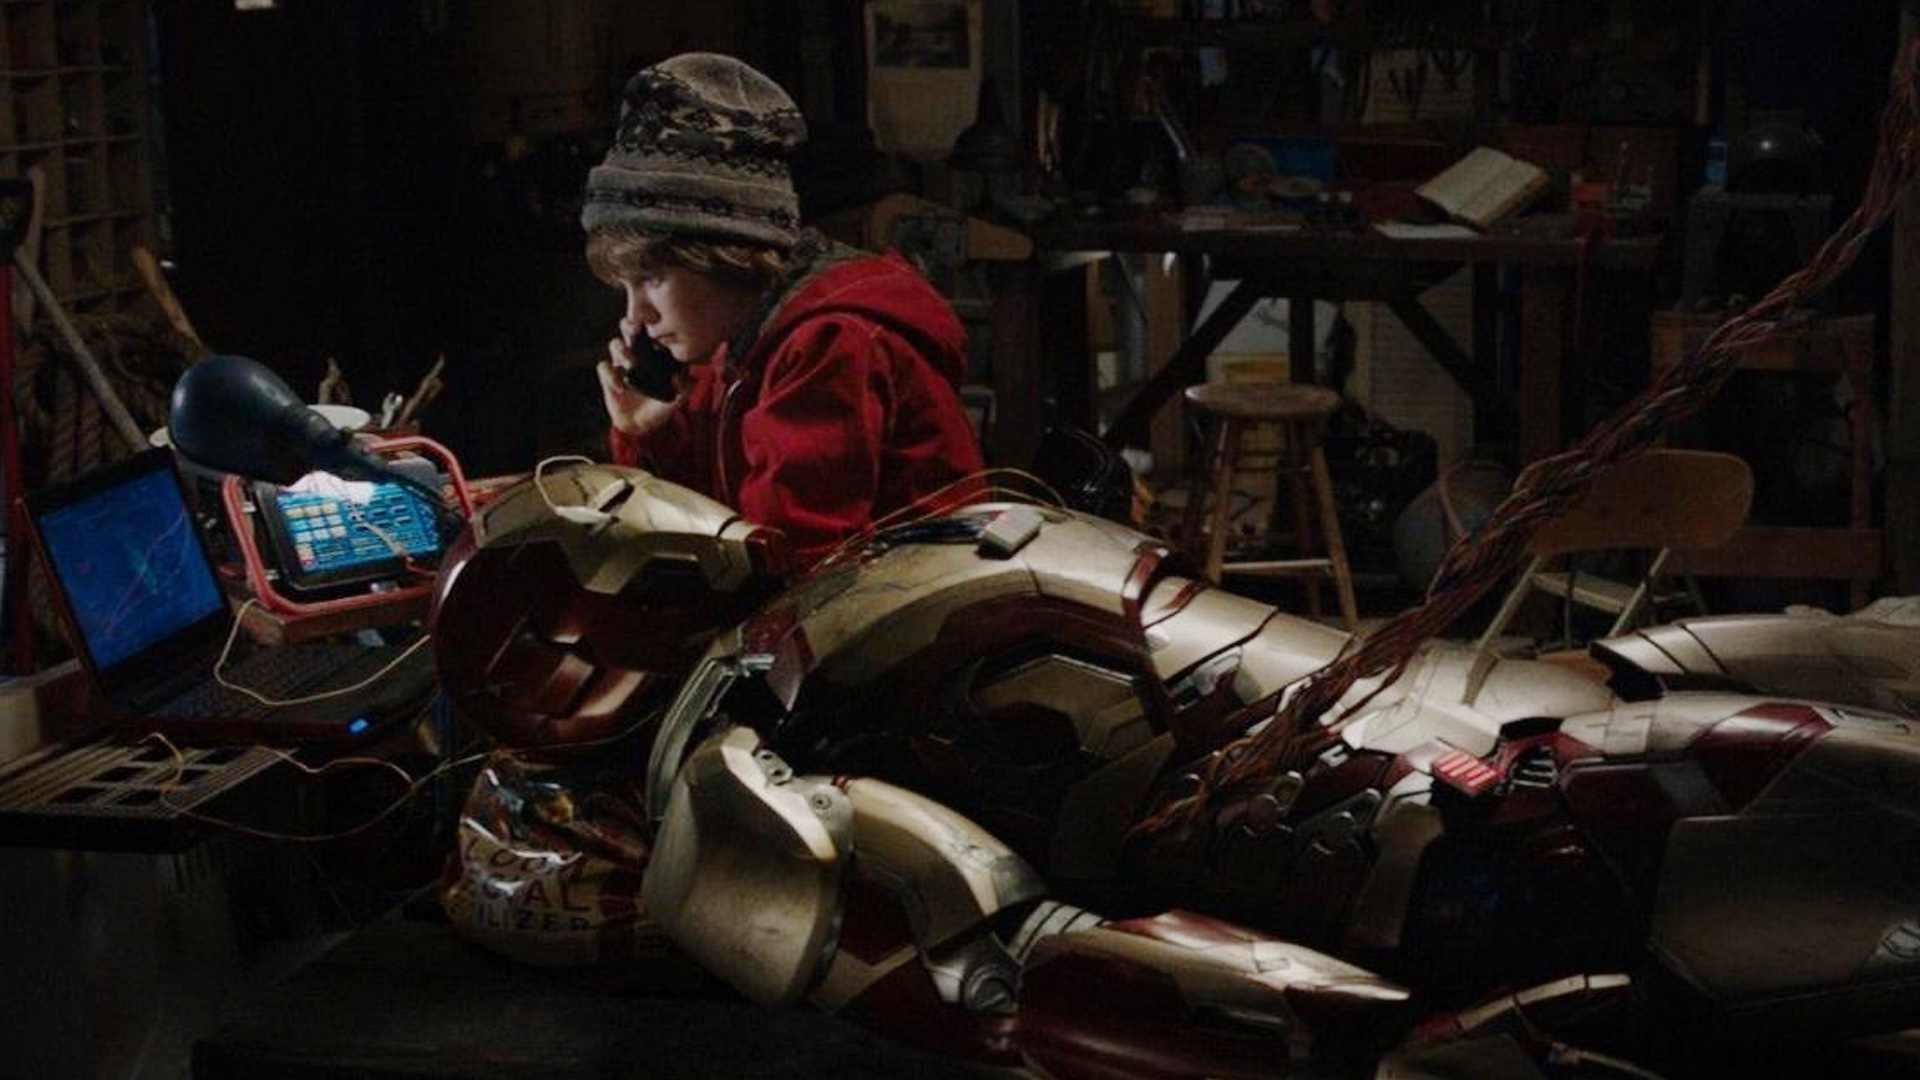 that-kid-from-iron-man-3-that-tony-stark-befriended-will-be-in-avengers-4-social.jpg